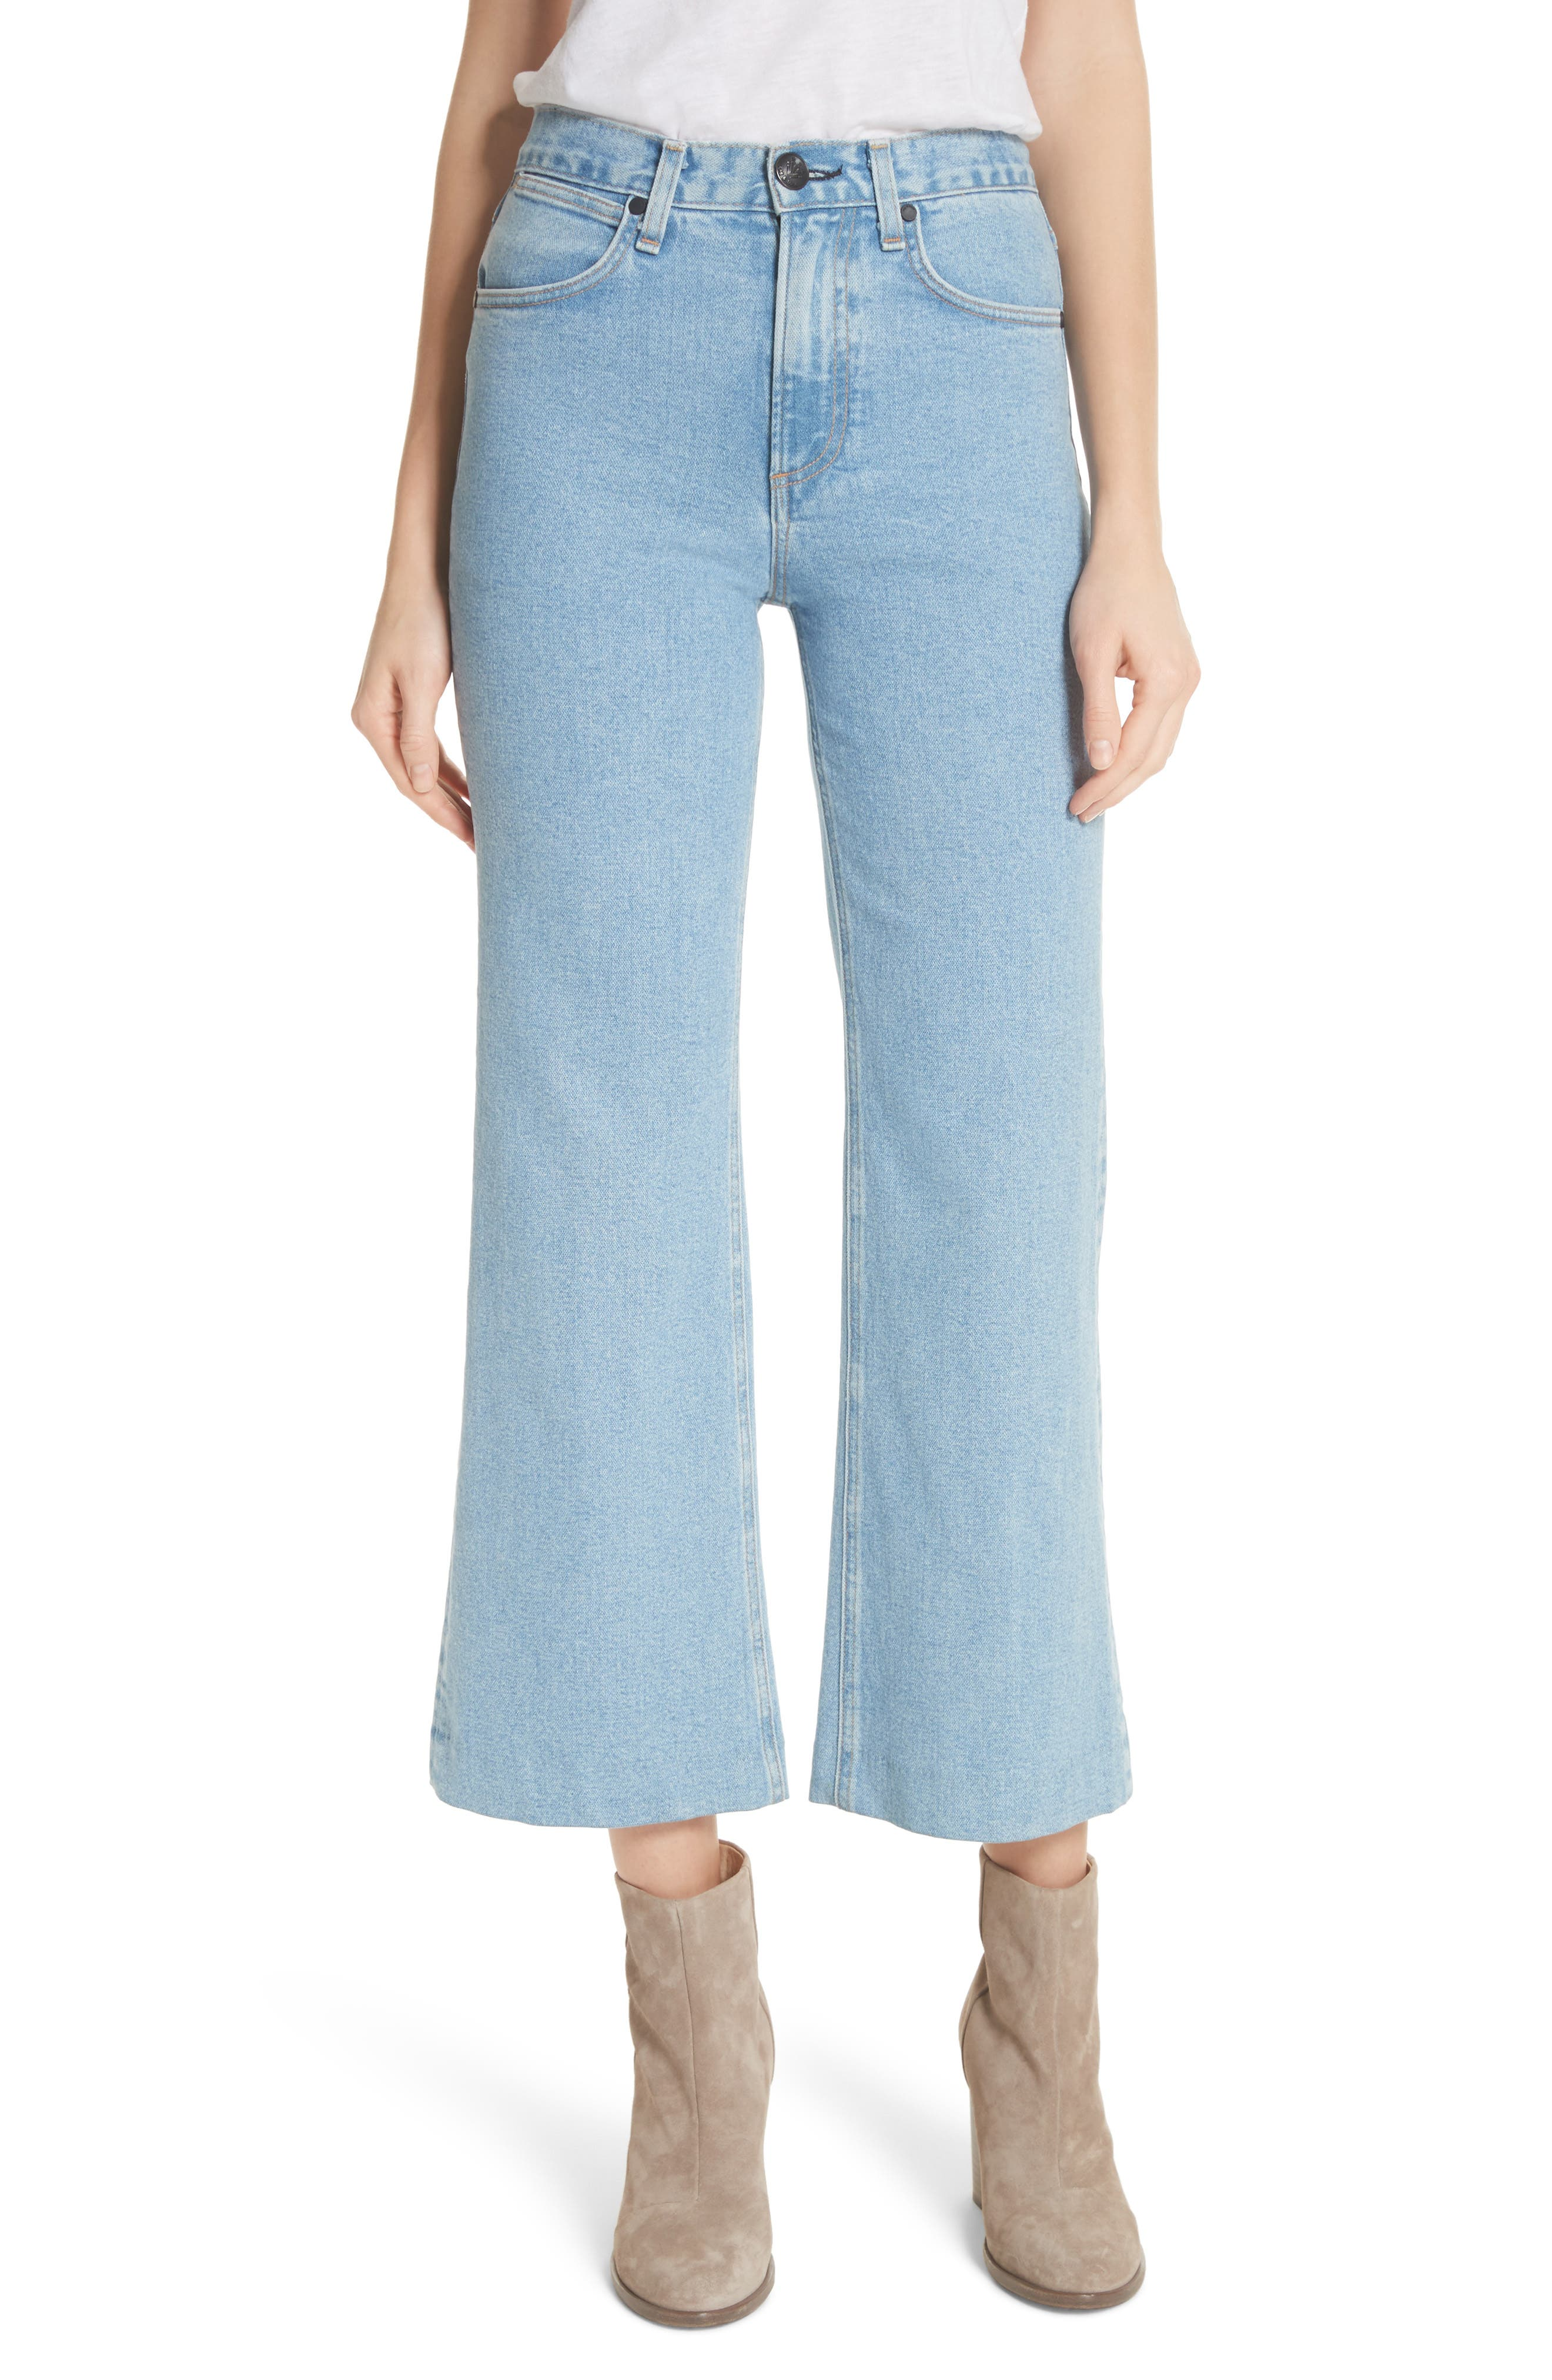 Justine High Waist Wide Leg Trouser Jeans,                         Main,                         color, Broken Nelly